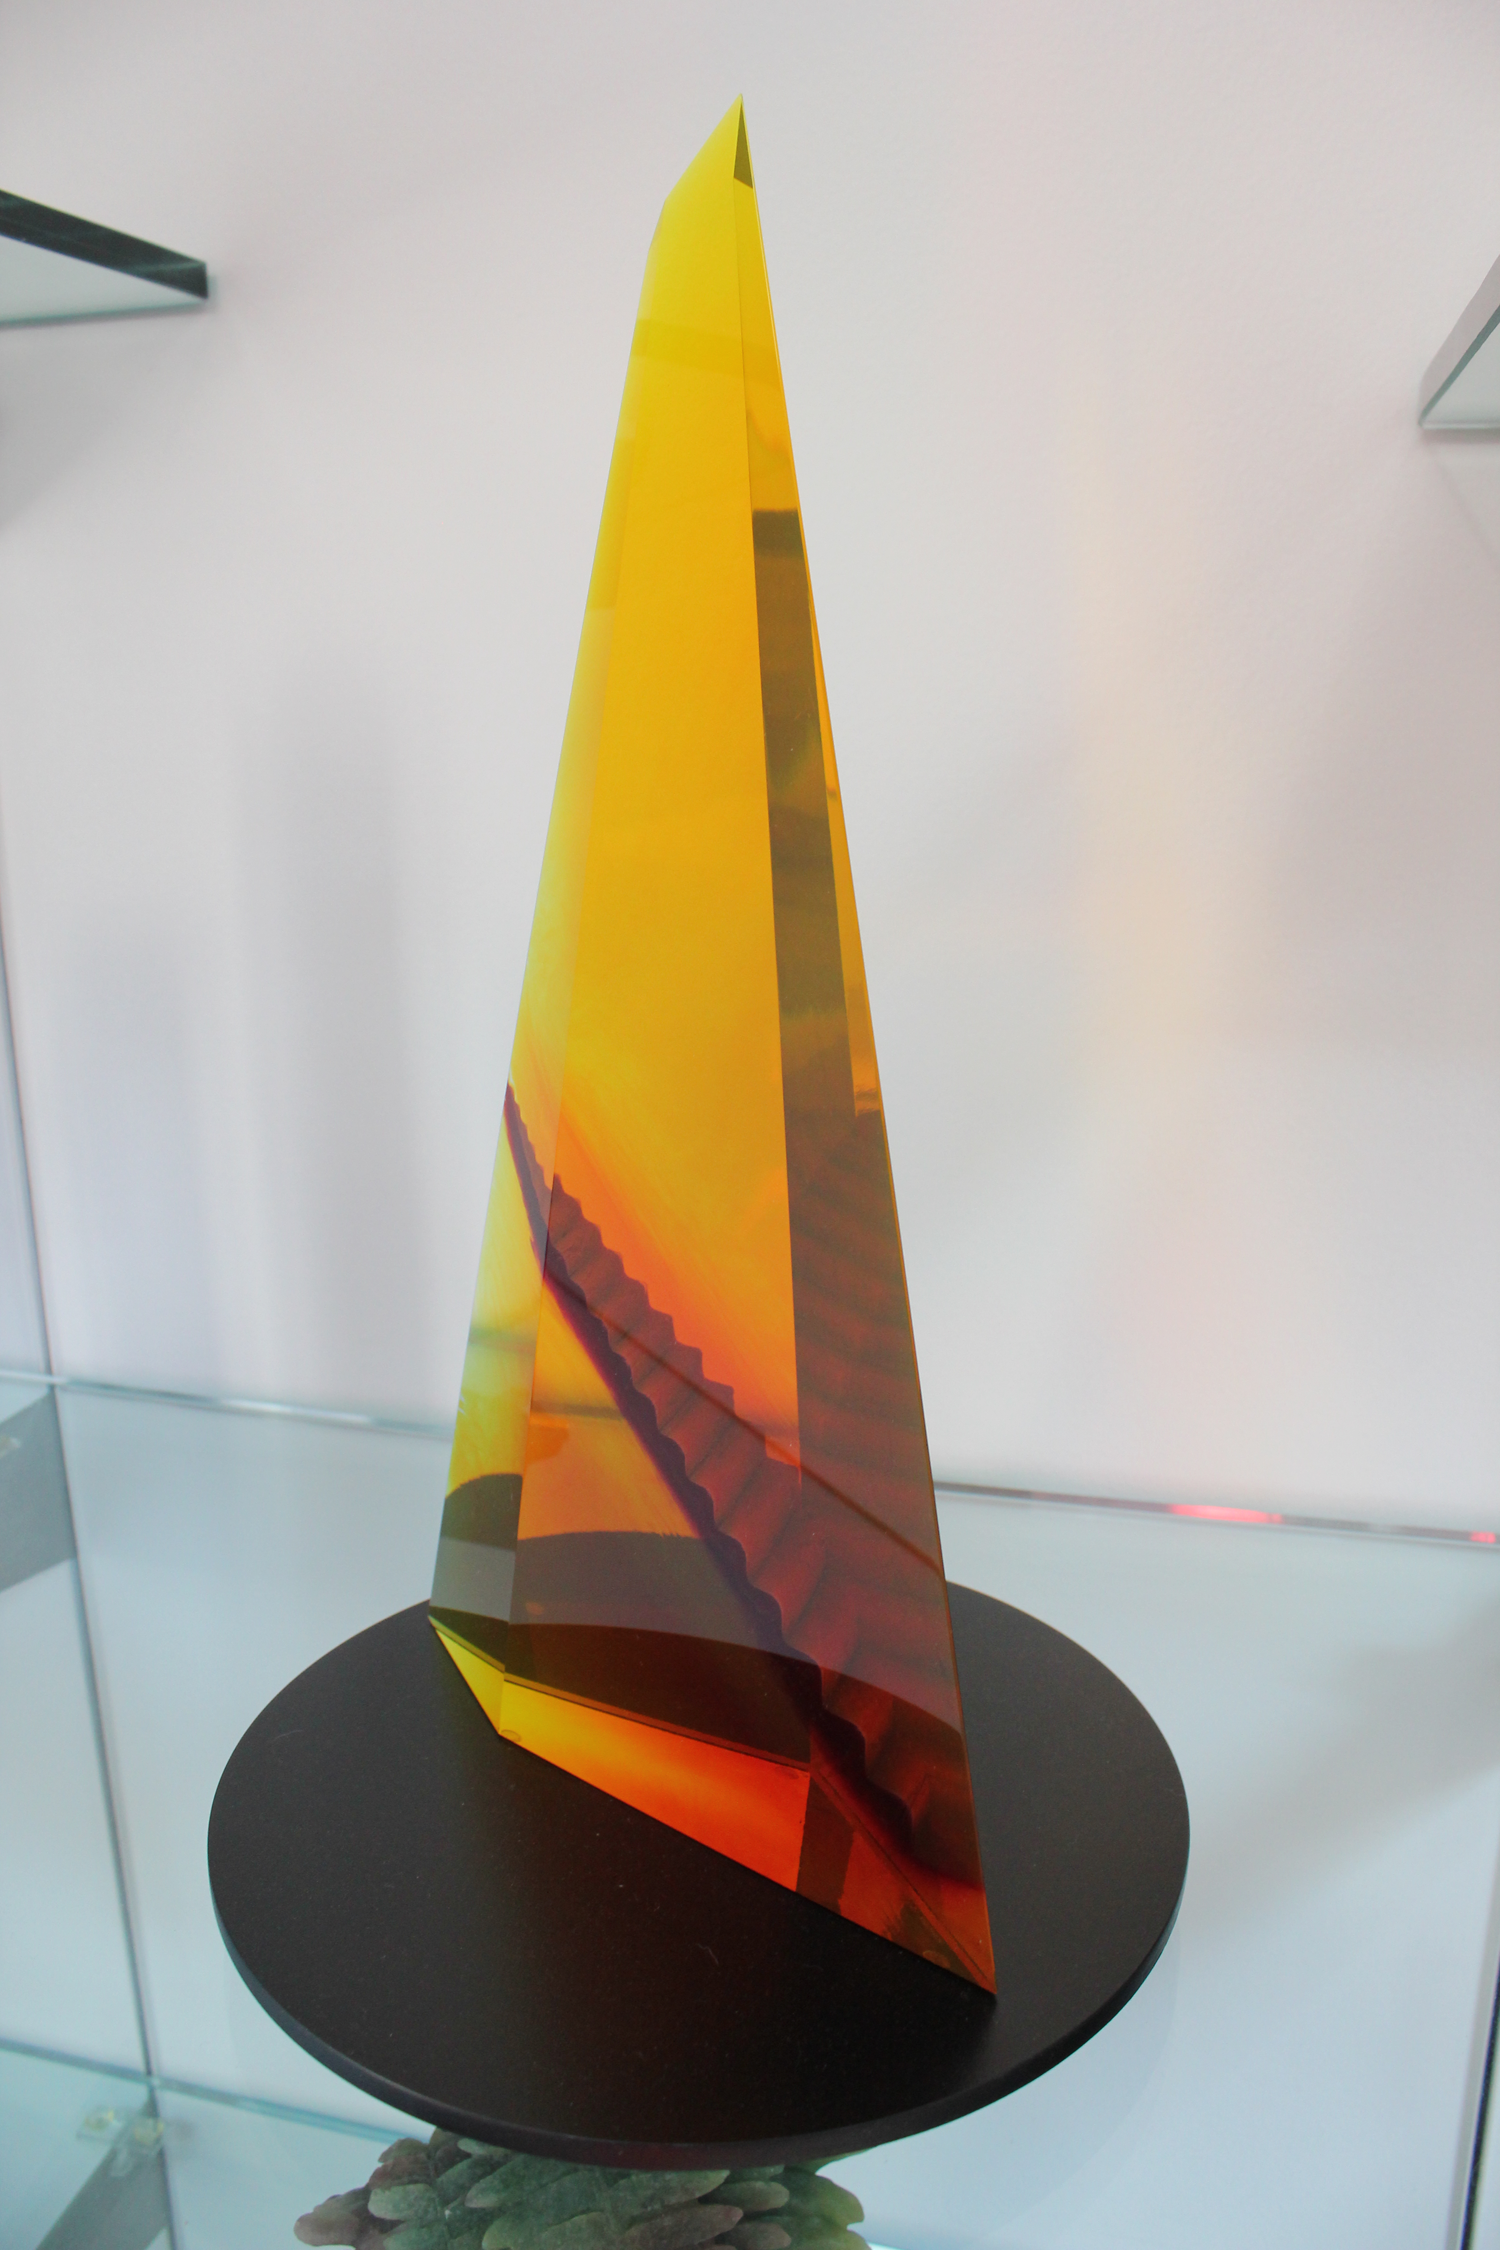 """""""Escher's Tower"""" by Mark Peiser, 1986, cast glass form with staircase interior."""